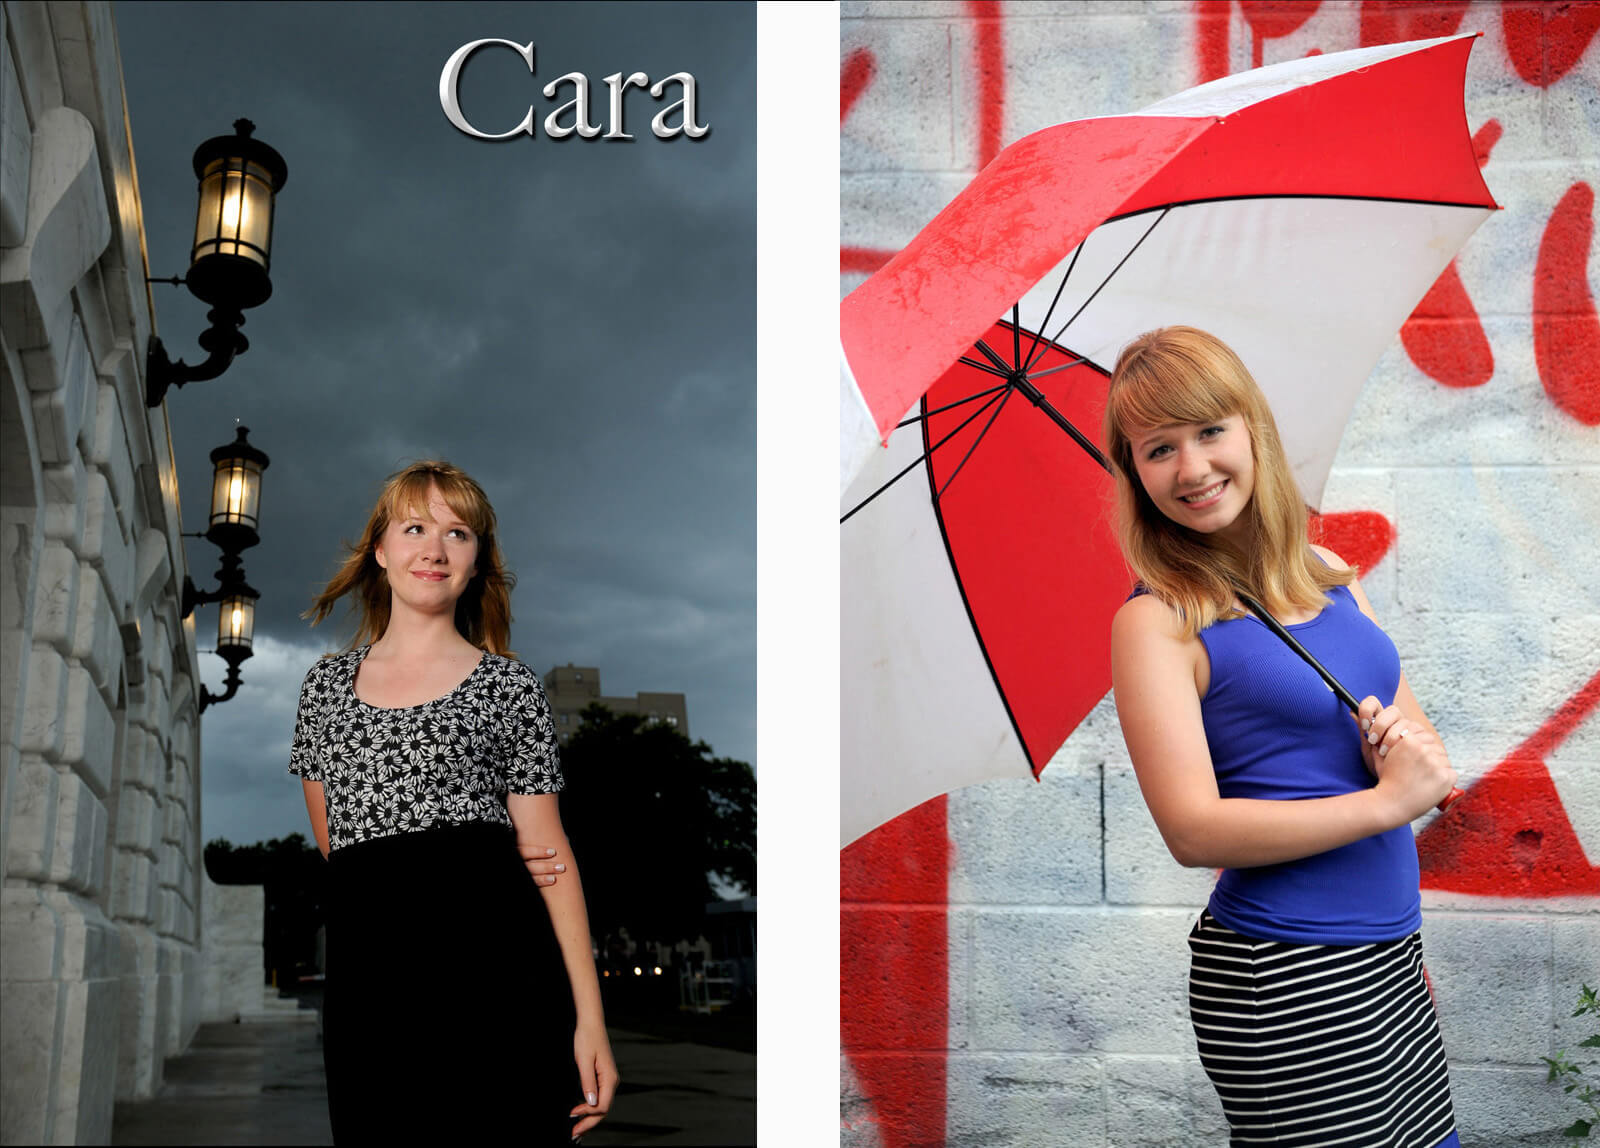 Metro Detroit, Michigan senior photography is all done outdoors, on location which means photographing rain or shine and can create some amazingly dramatic photos as well!